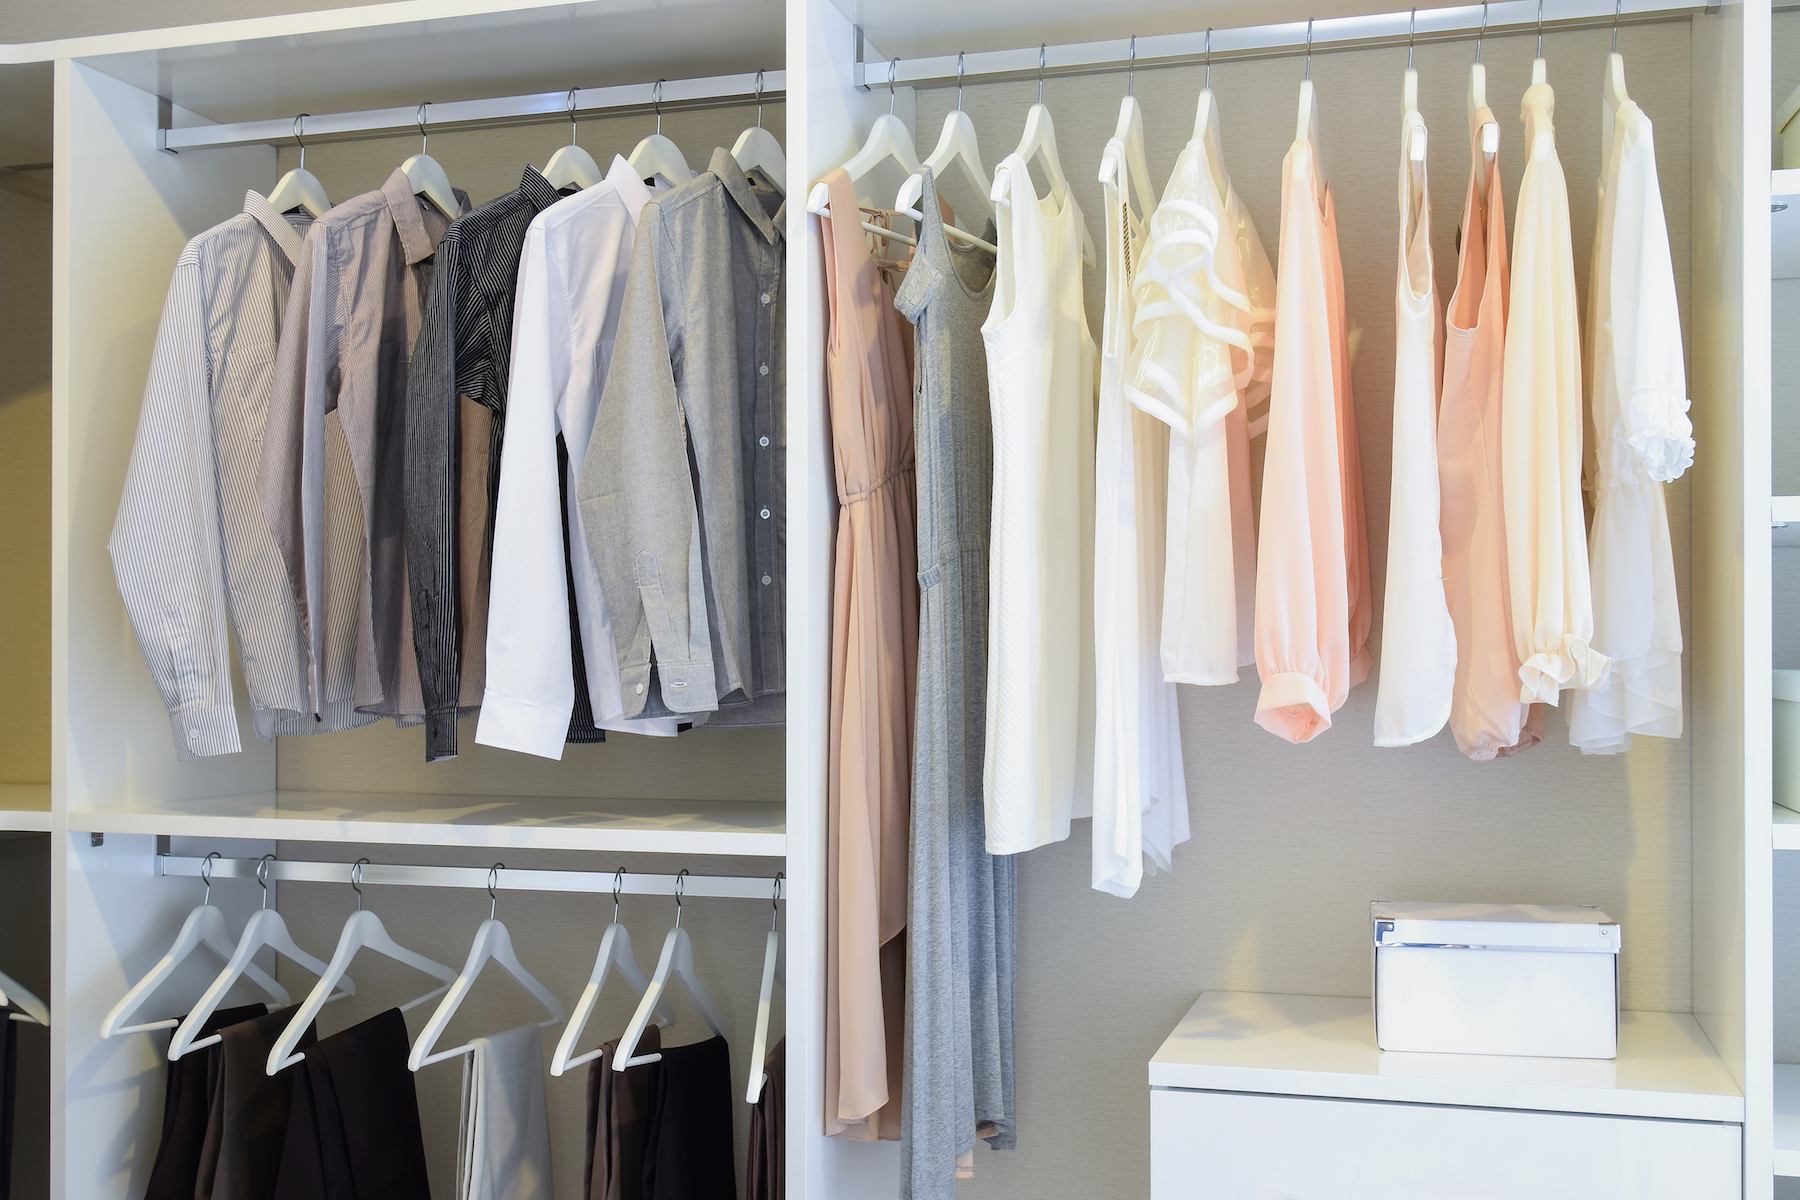 Organized Closet With Shirts